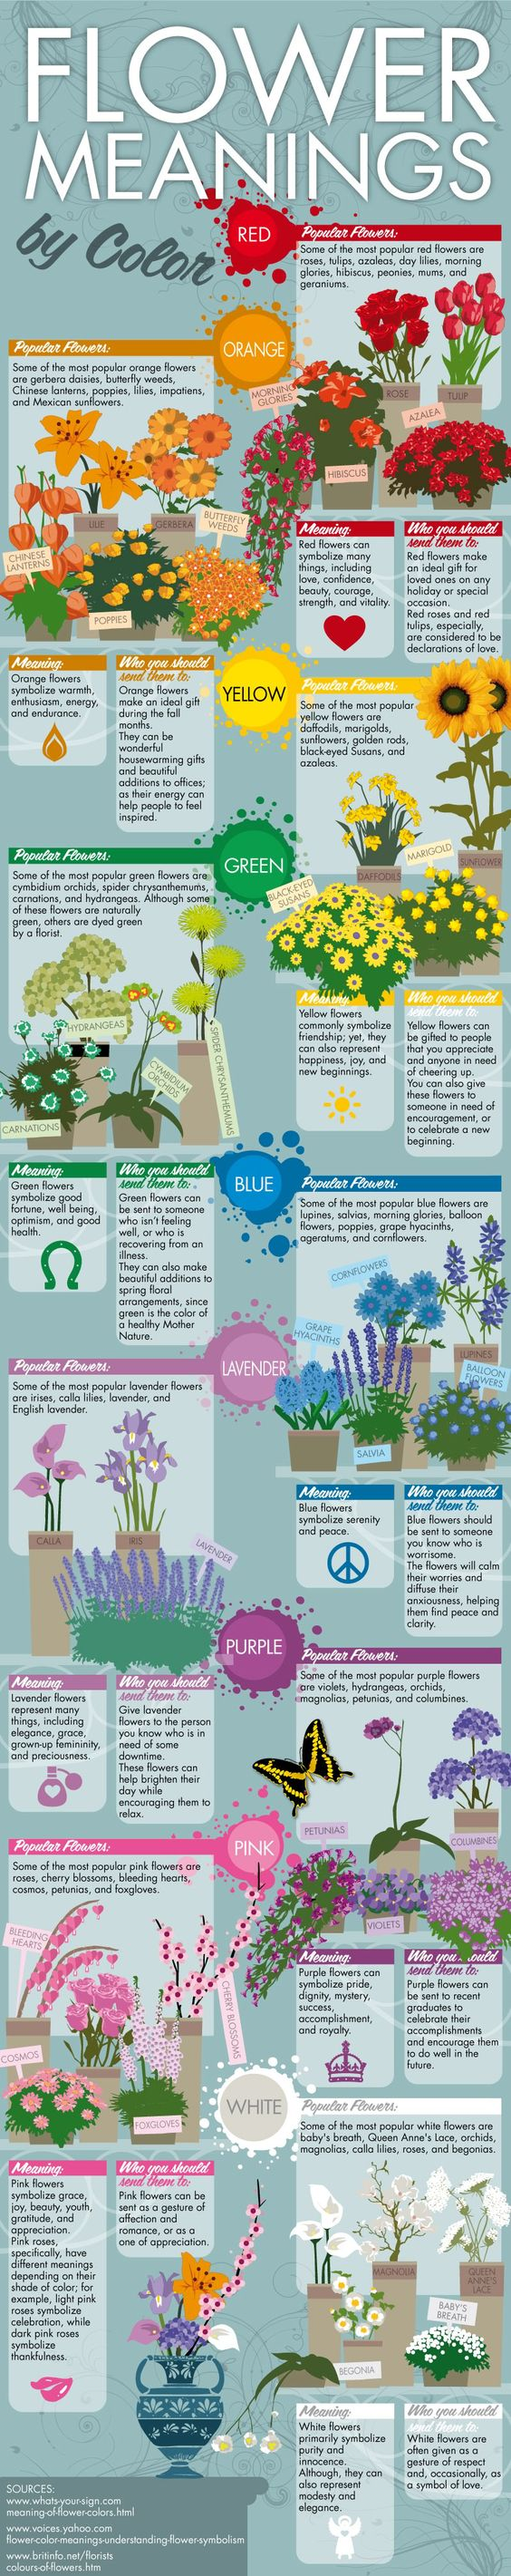 Flower flower meanings and posts on pinterest for What makes flowers different colors